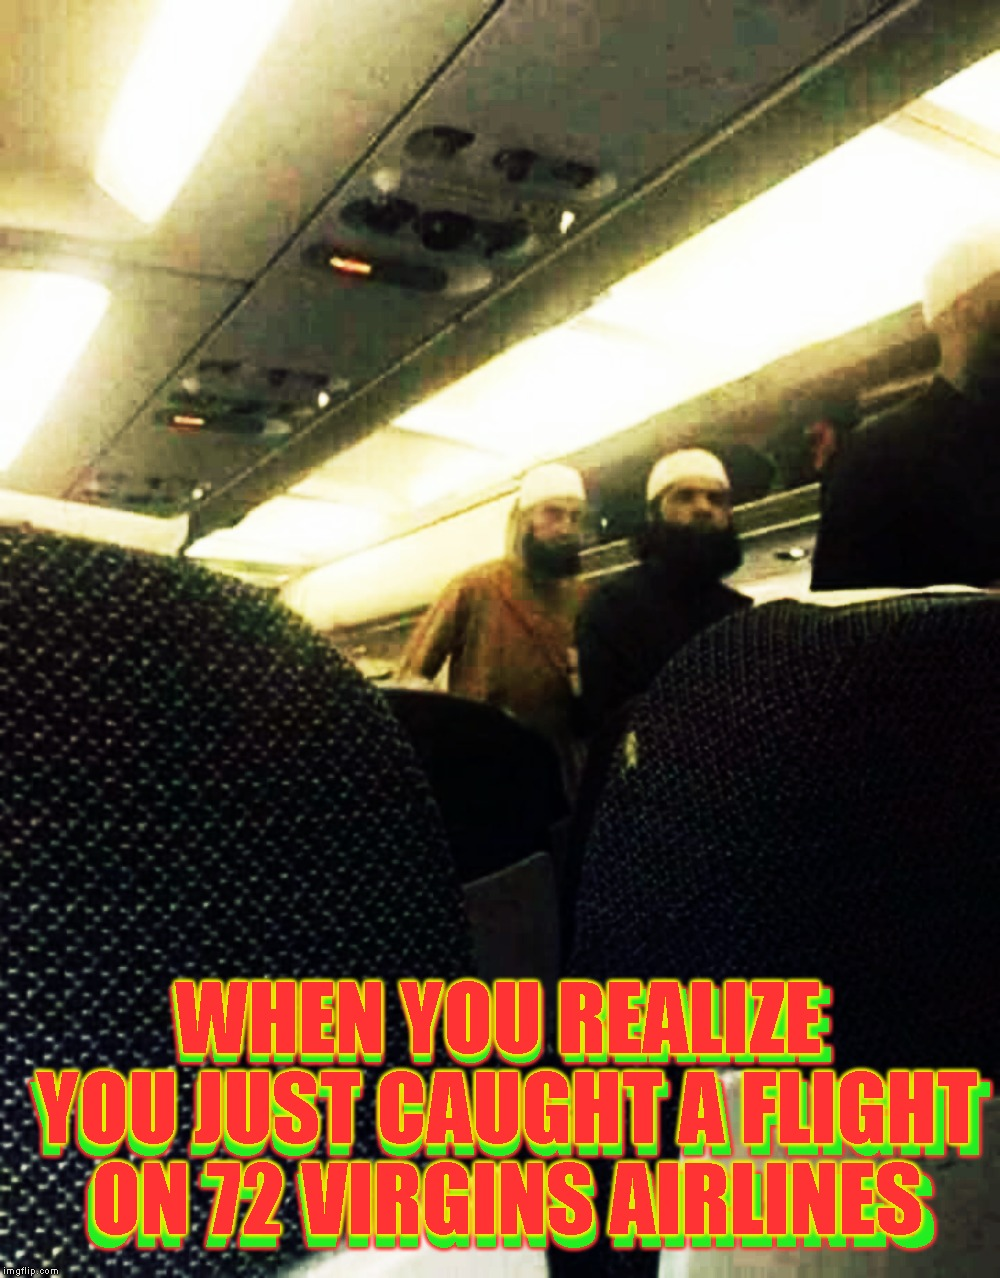 We Guarantee That Your Fear Of Flying Will Be Just A Memory |  WHEN YOU REALIZE YOU JUST CAUGHT A FLIGHT ON 72 VIRGINS AIRLINES; WHEN YOU REALIZE YOU JUST CAUGHT A FLIGHT ON 72 VIRGINS AIRLINES | image tagged in 72 virgins,funny,islam,muslim,flying,flight | made w/ Imgflip meme maker